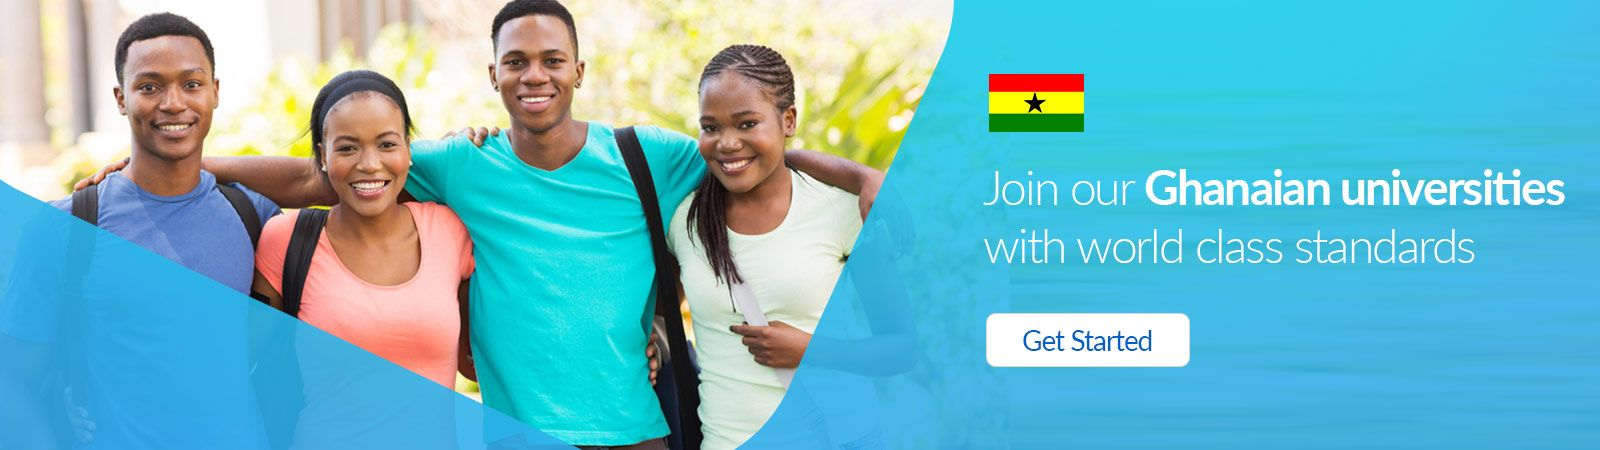 Ghana Private Universities | Buy Online